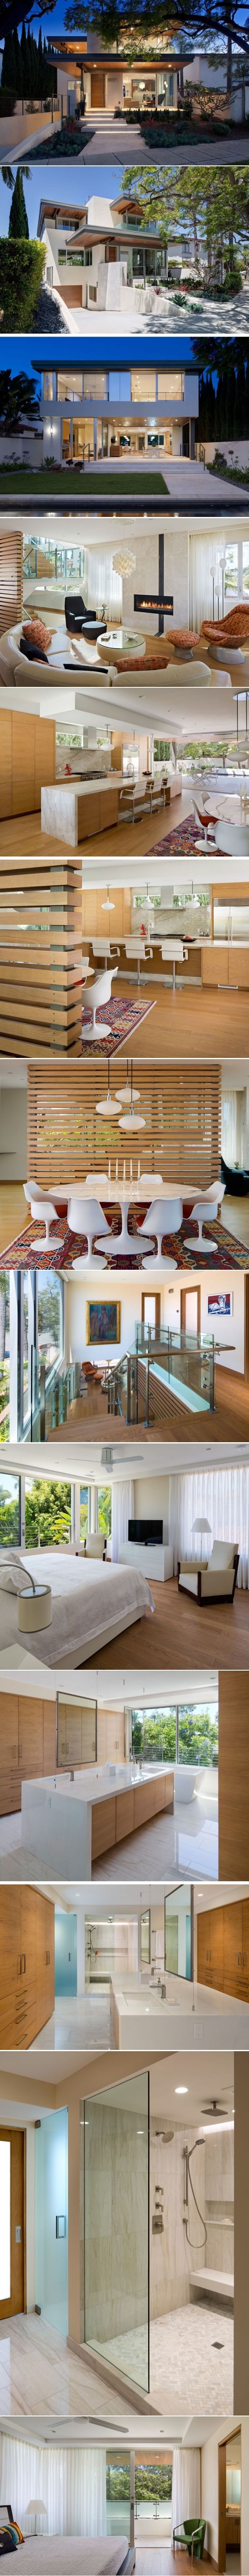 This New House In California Presents A Welcoming Face To The Street | CONTEMPORIST